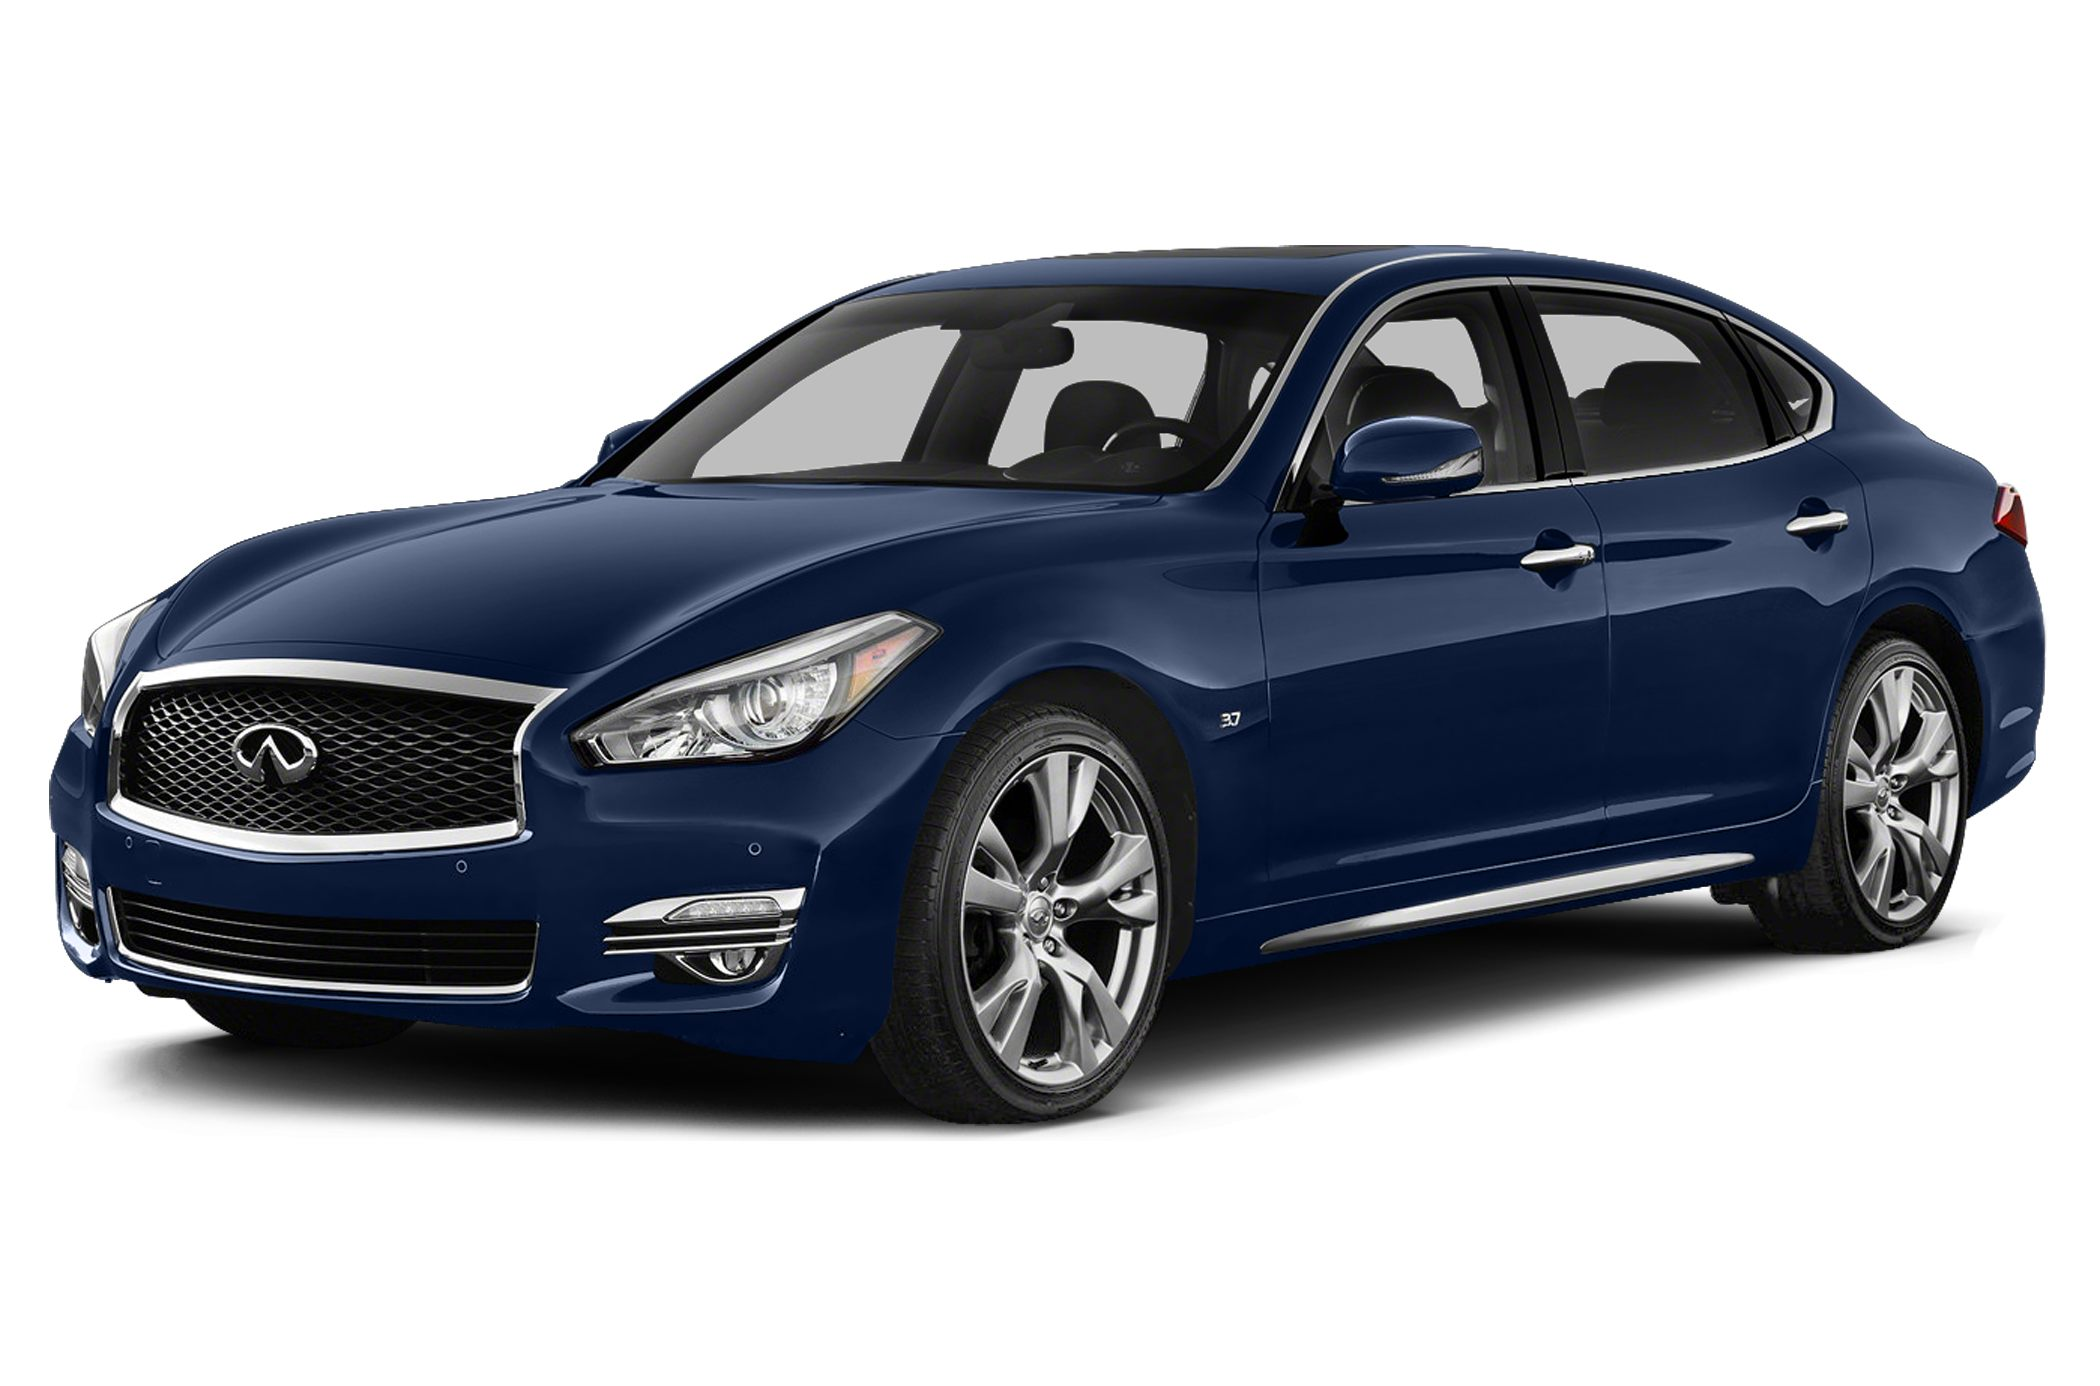 2015 Infiniti Q70L 3.7 Sedan for sale in Houston for $52,925 with 0 miles